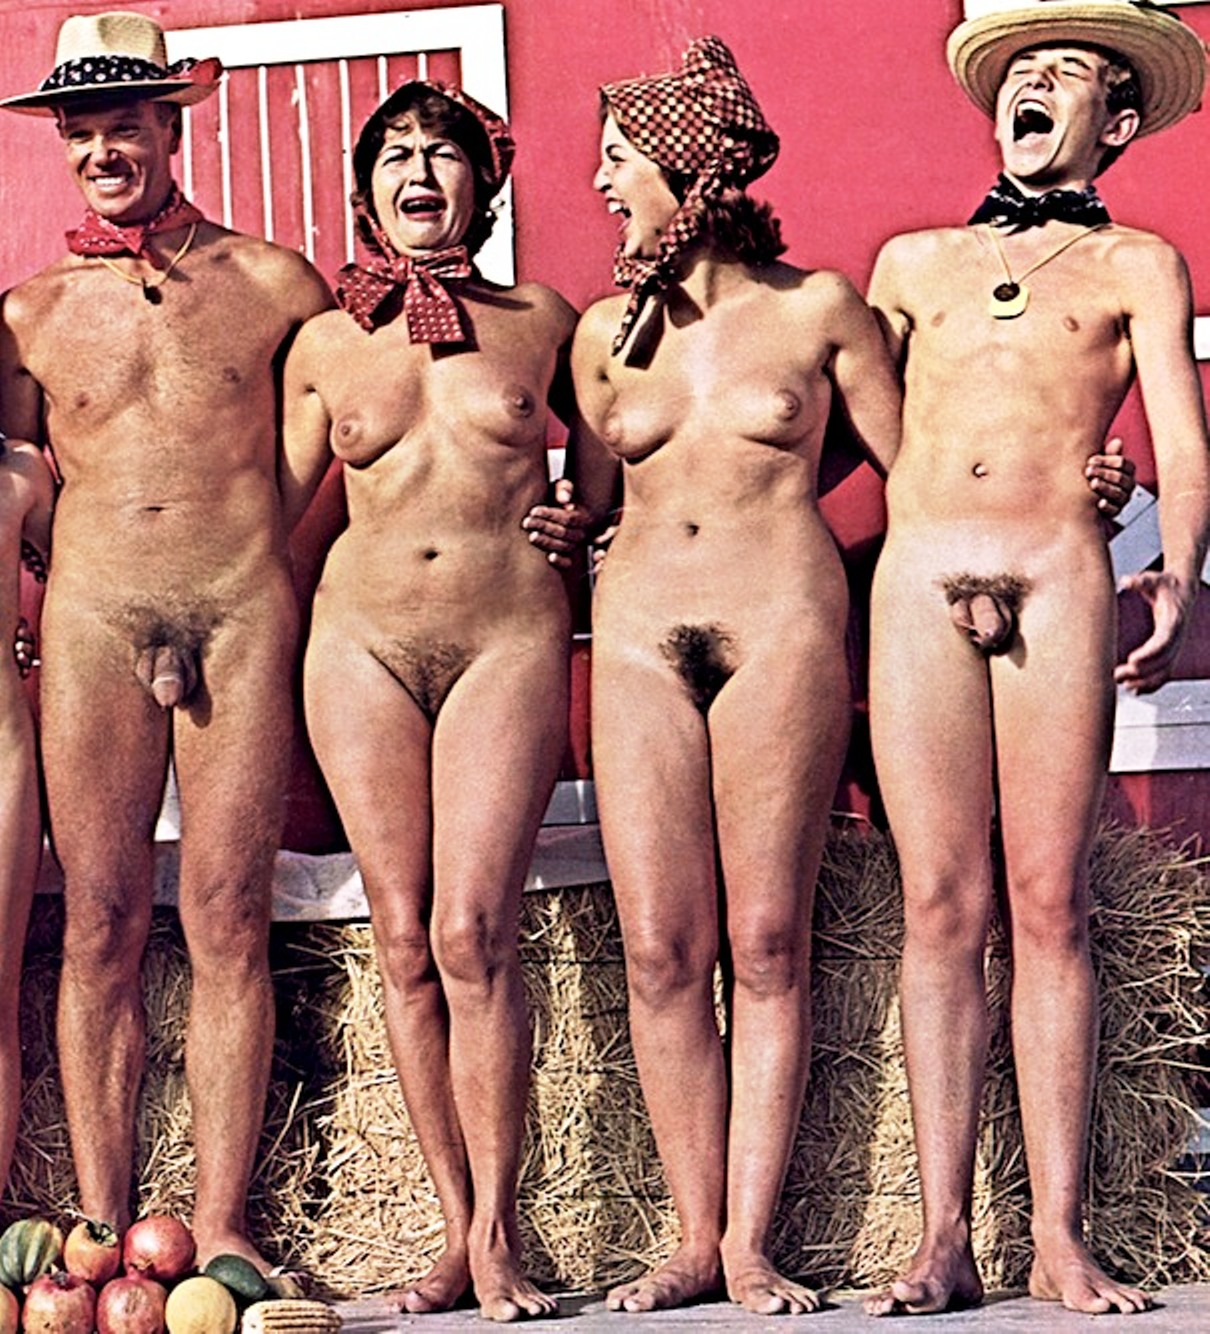 Have thought Nude naked nudist family sorry